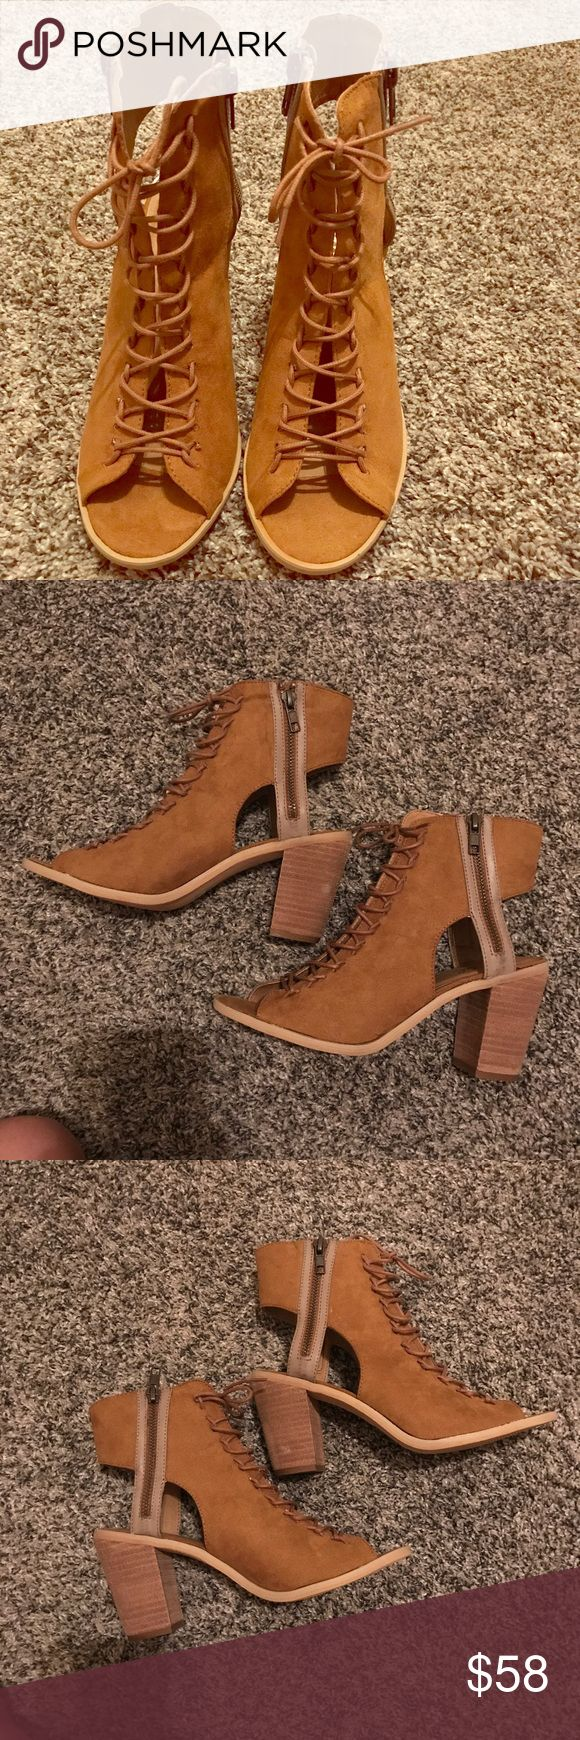 Women's bootie size 8 NWOT Lace up, peep toe, open heeled booties. Super cute! Zippers on both side. Never worn. Perfect for the end of summer and will carry over into fall. Price is pretty firm because they are brand new. rebel Shoes Ankle Boots & Booties